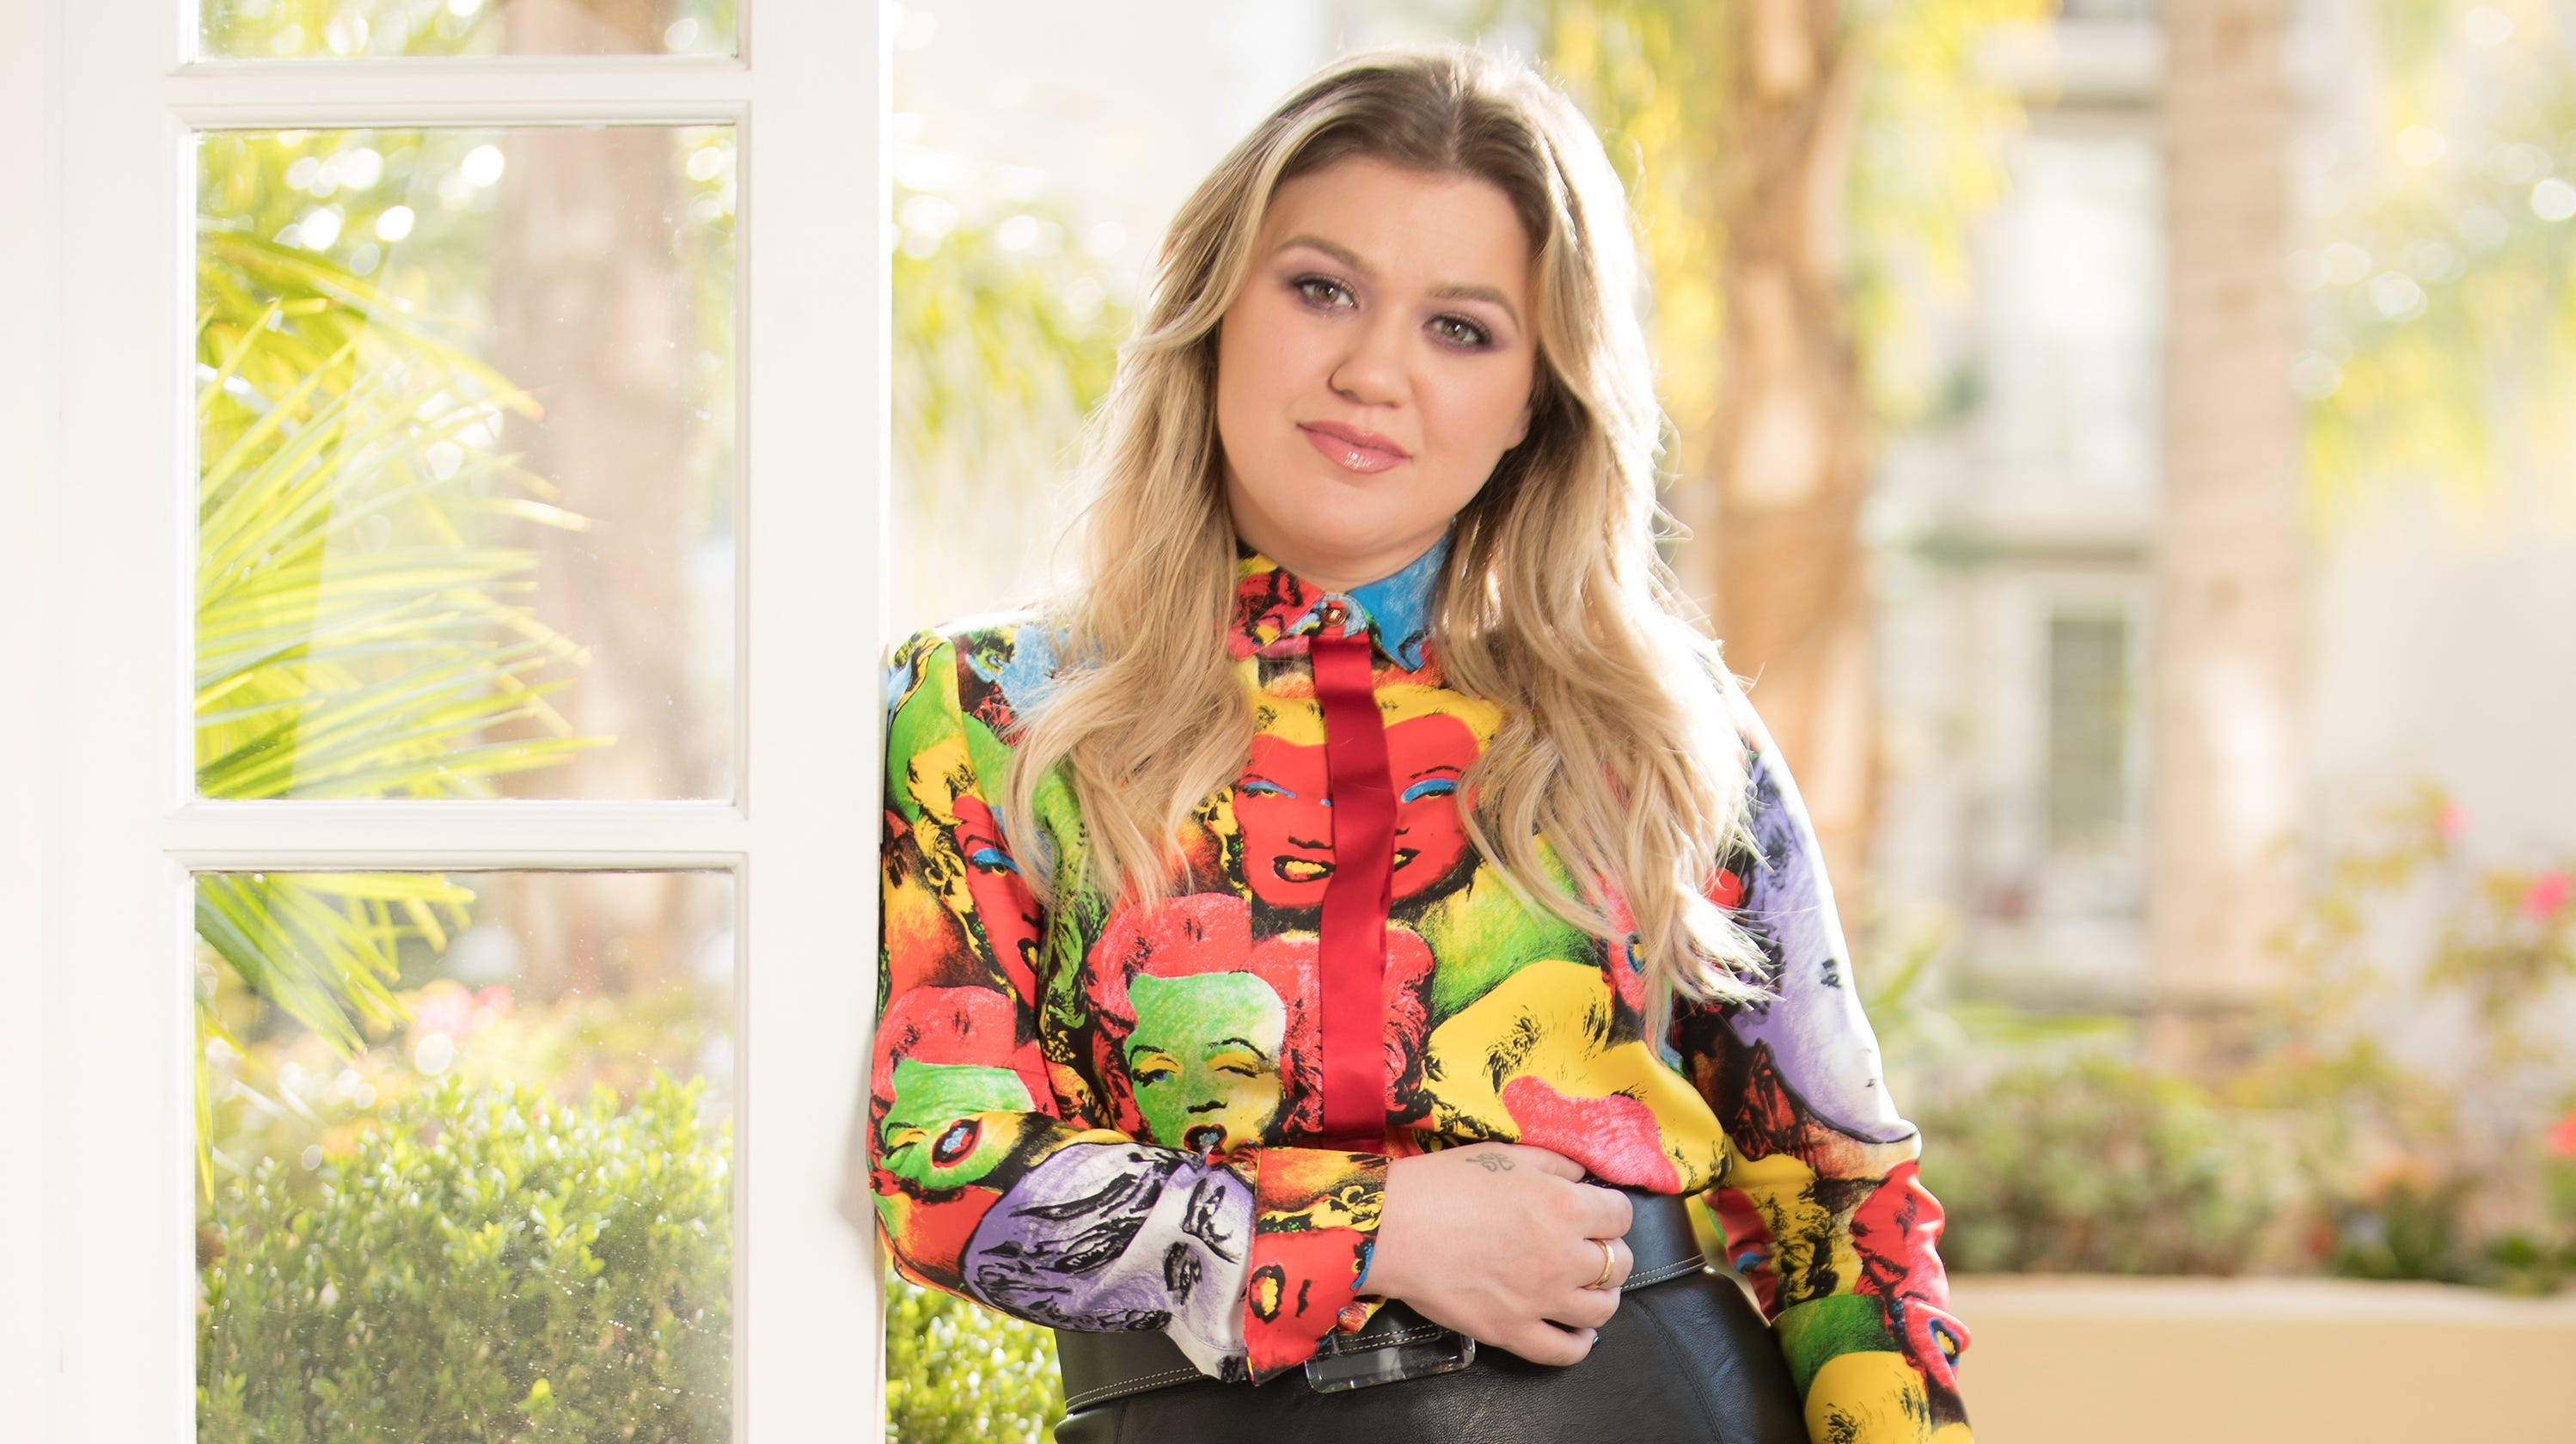 Kelly Clarkson told her kids that she made the Easter baskets, not a bunny